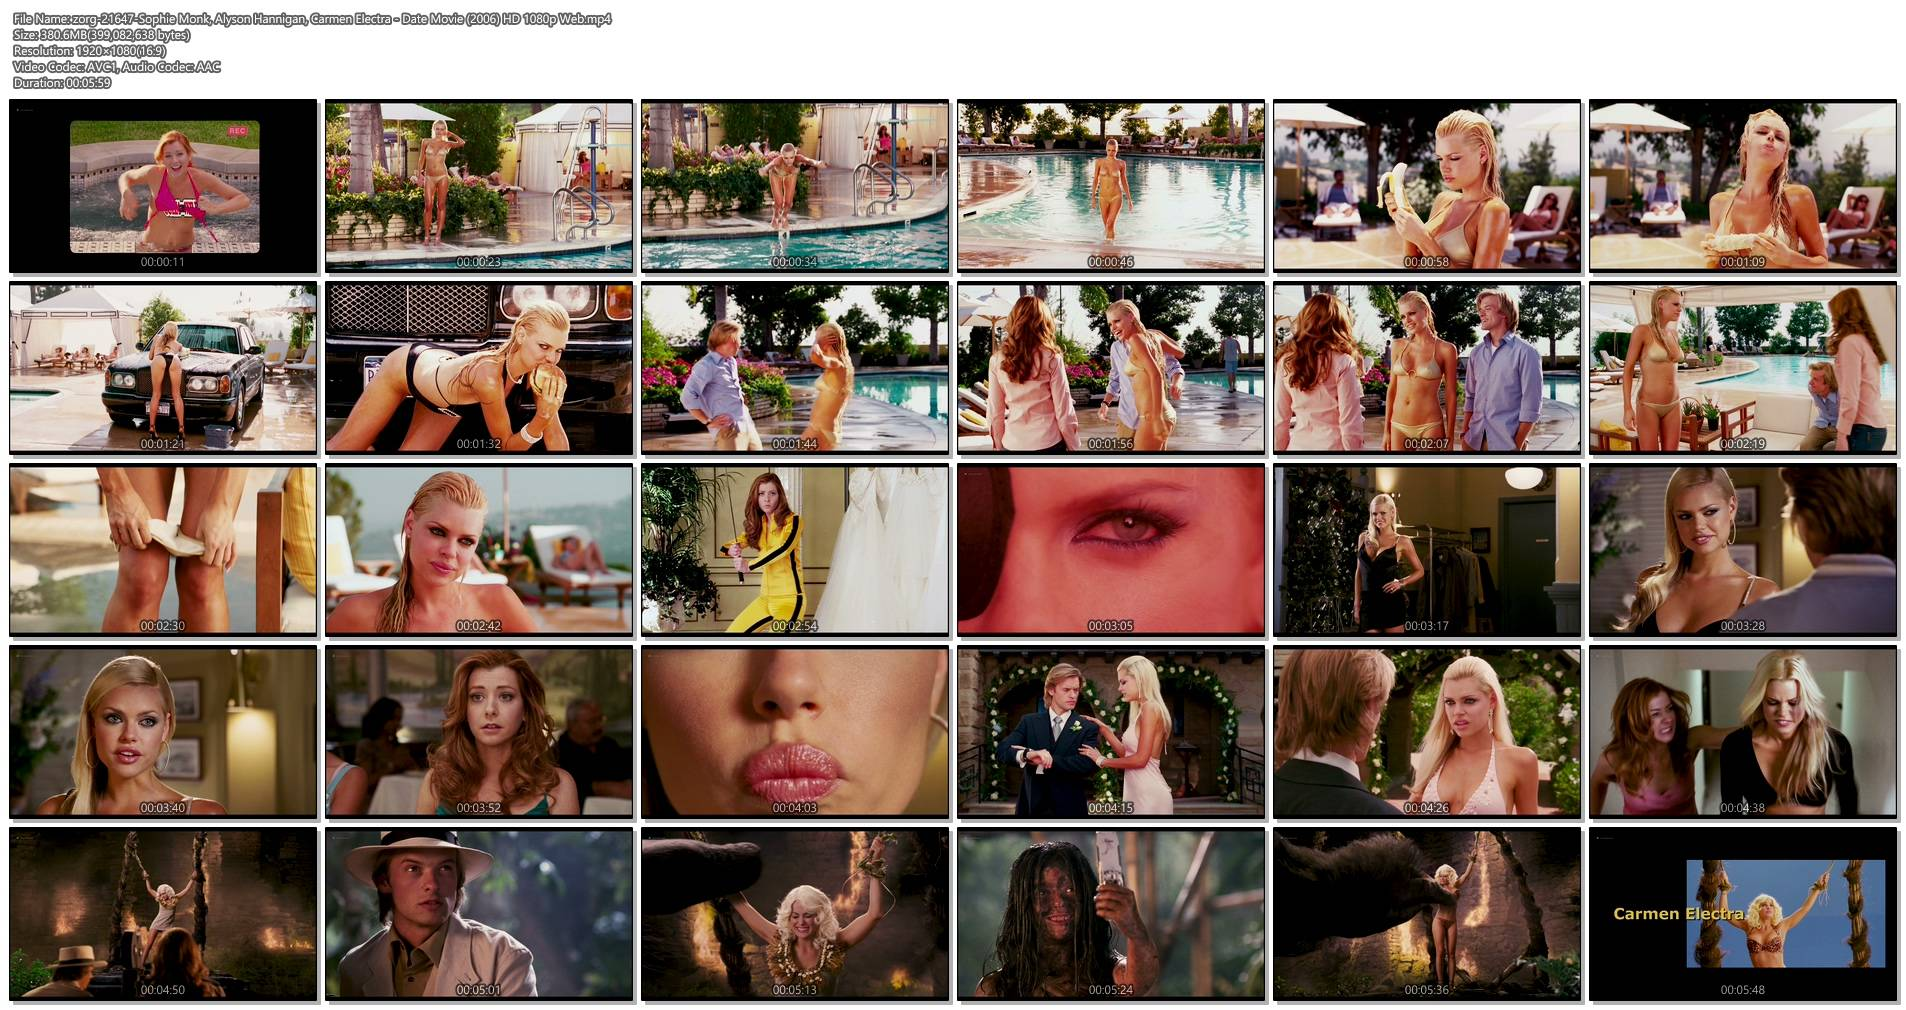 Sophie Monk hot and sexy Alyson Hannigan hot Carmen Electra sexy and funny - Date Movie (2006) HD 1080p Web (1)